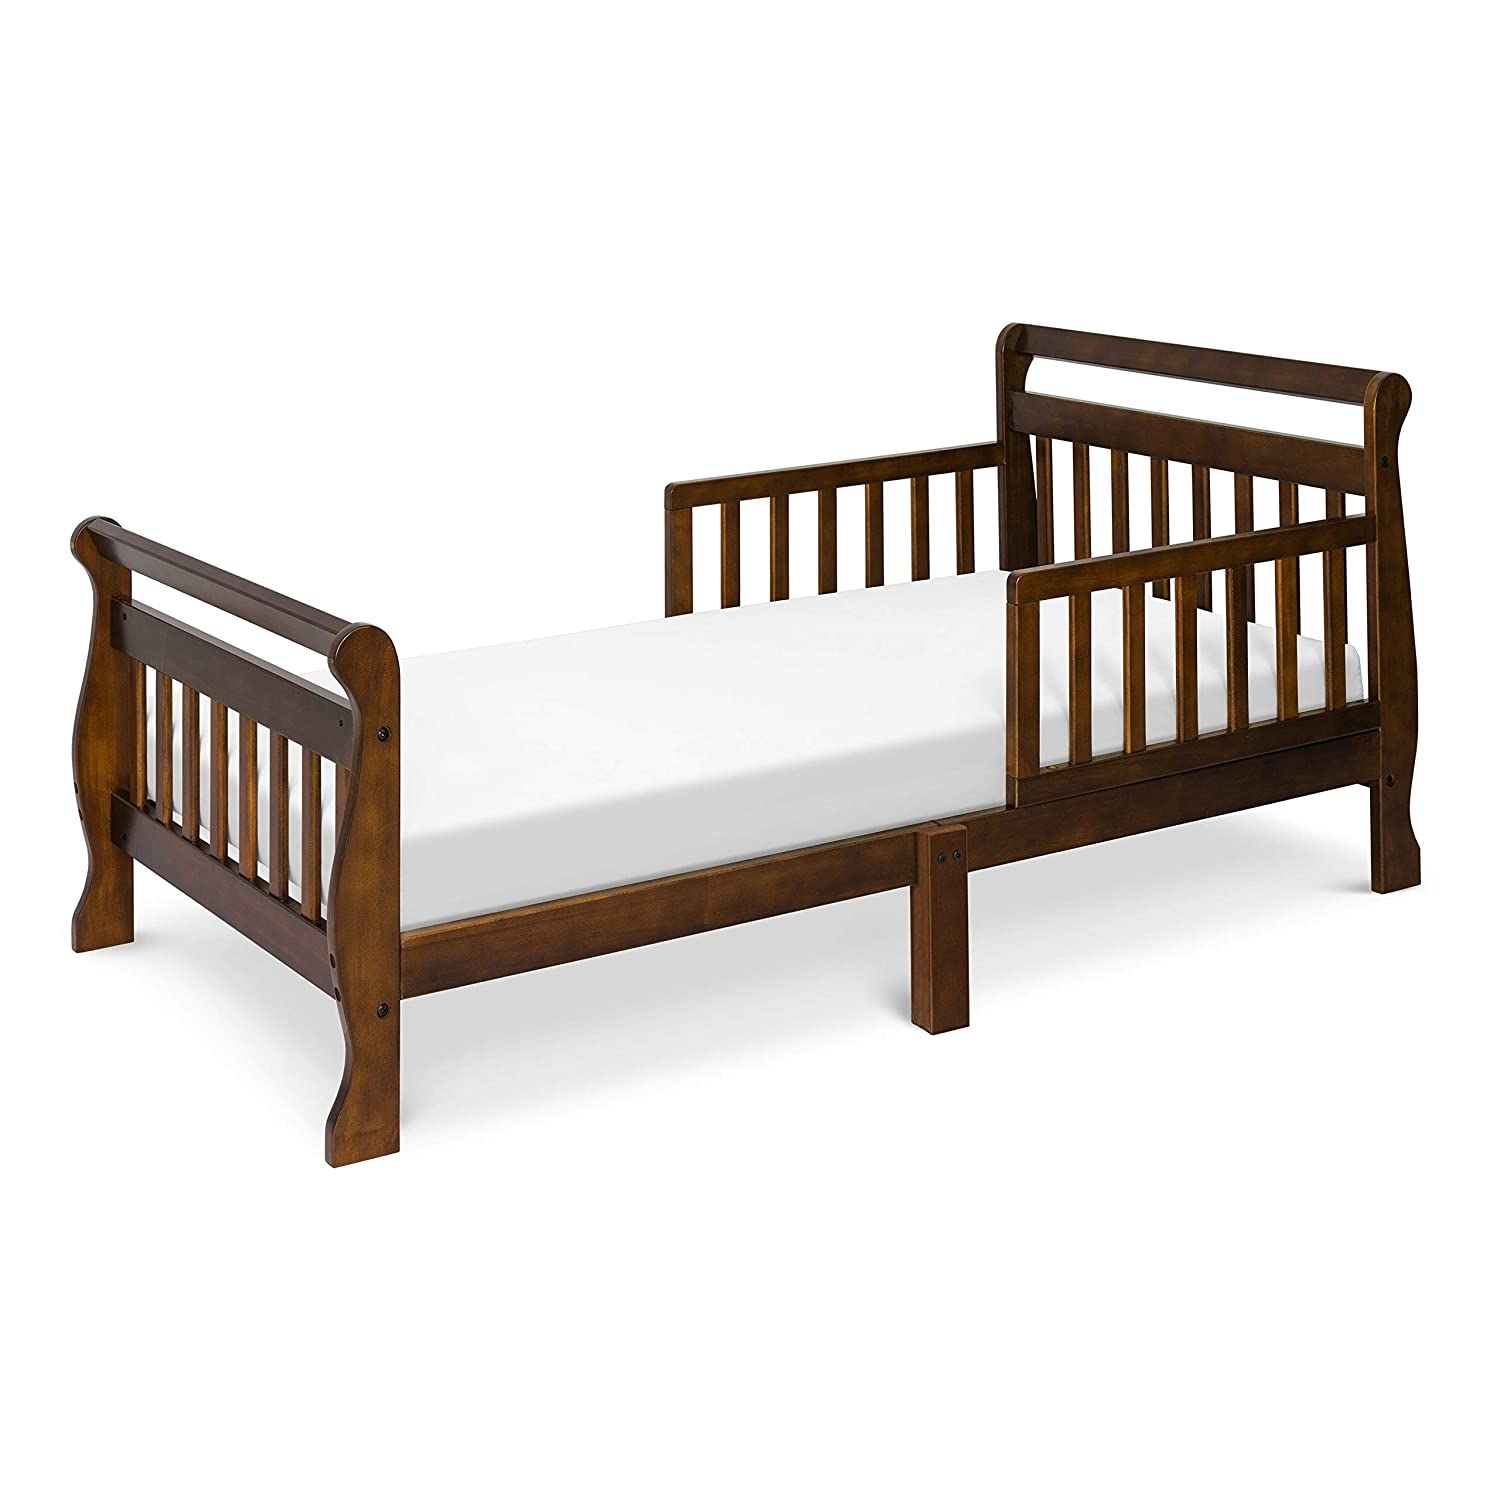 Davinci Elizabeth II Convertible Toddler Bed Includes Mattress & Sheets